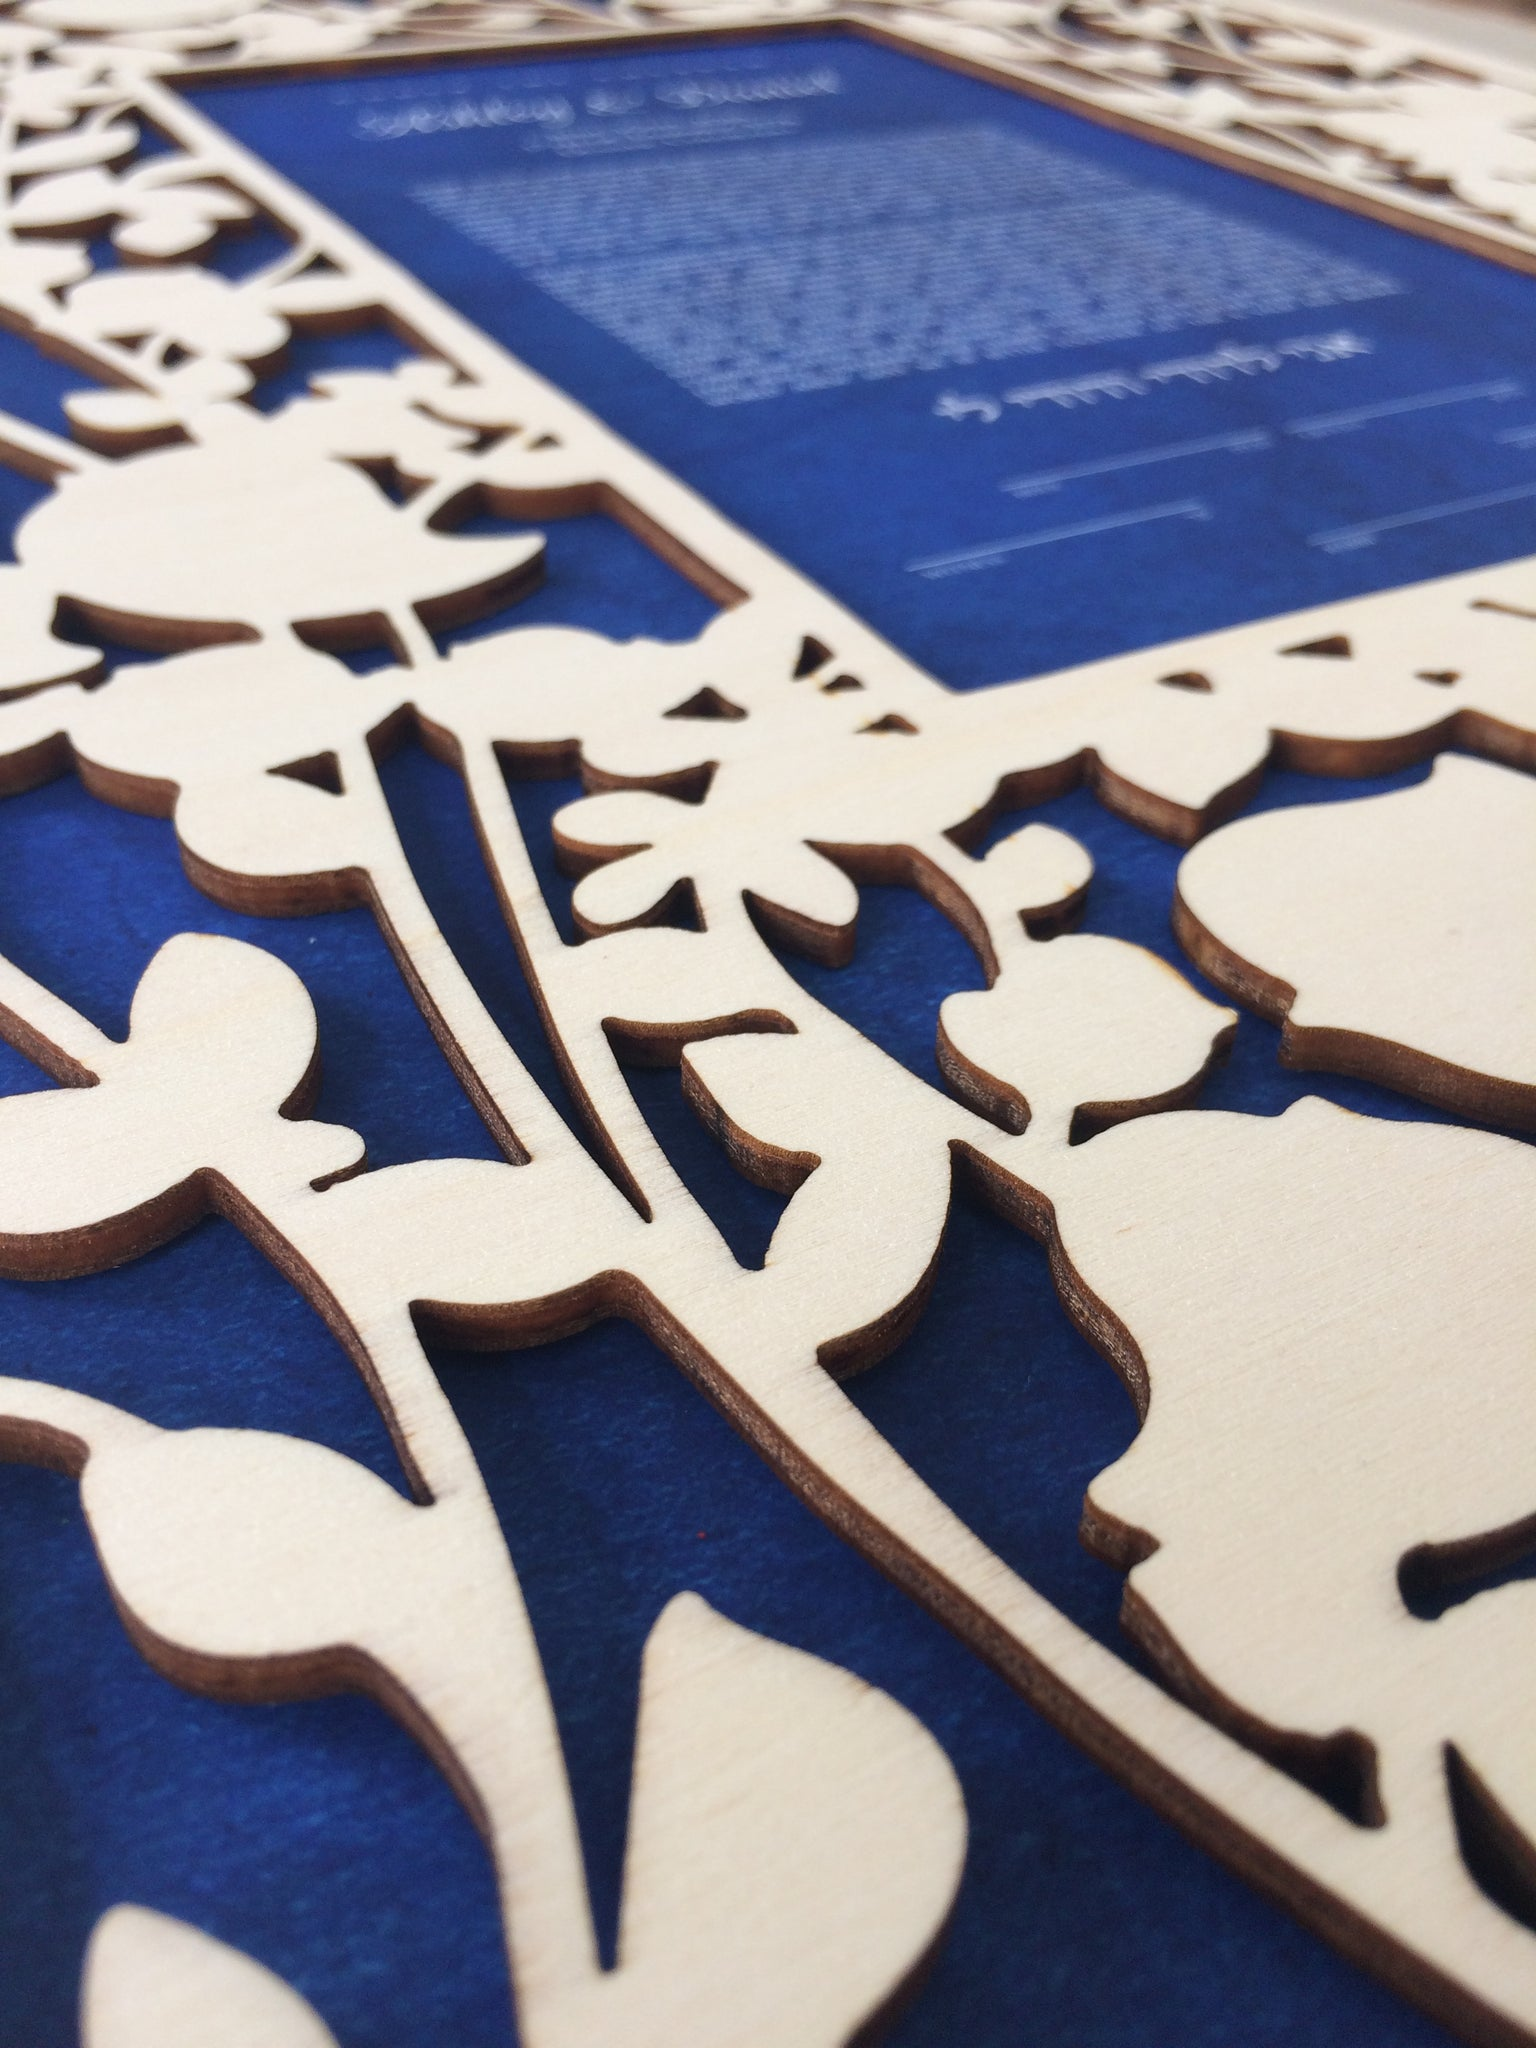 Custom Papercut Woodcut ketubah marriage certificate